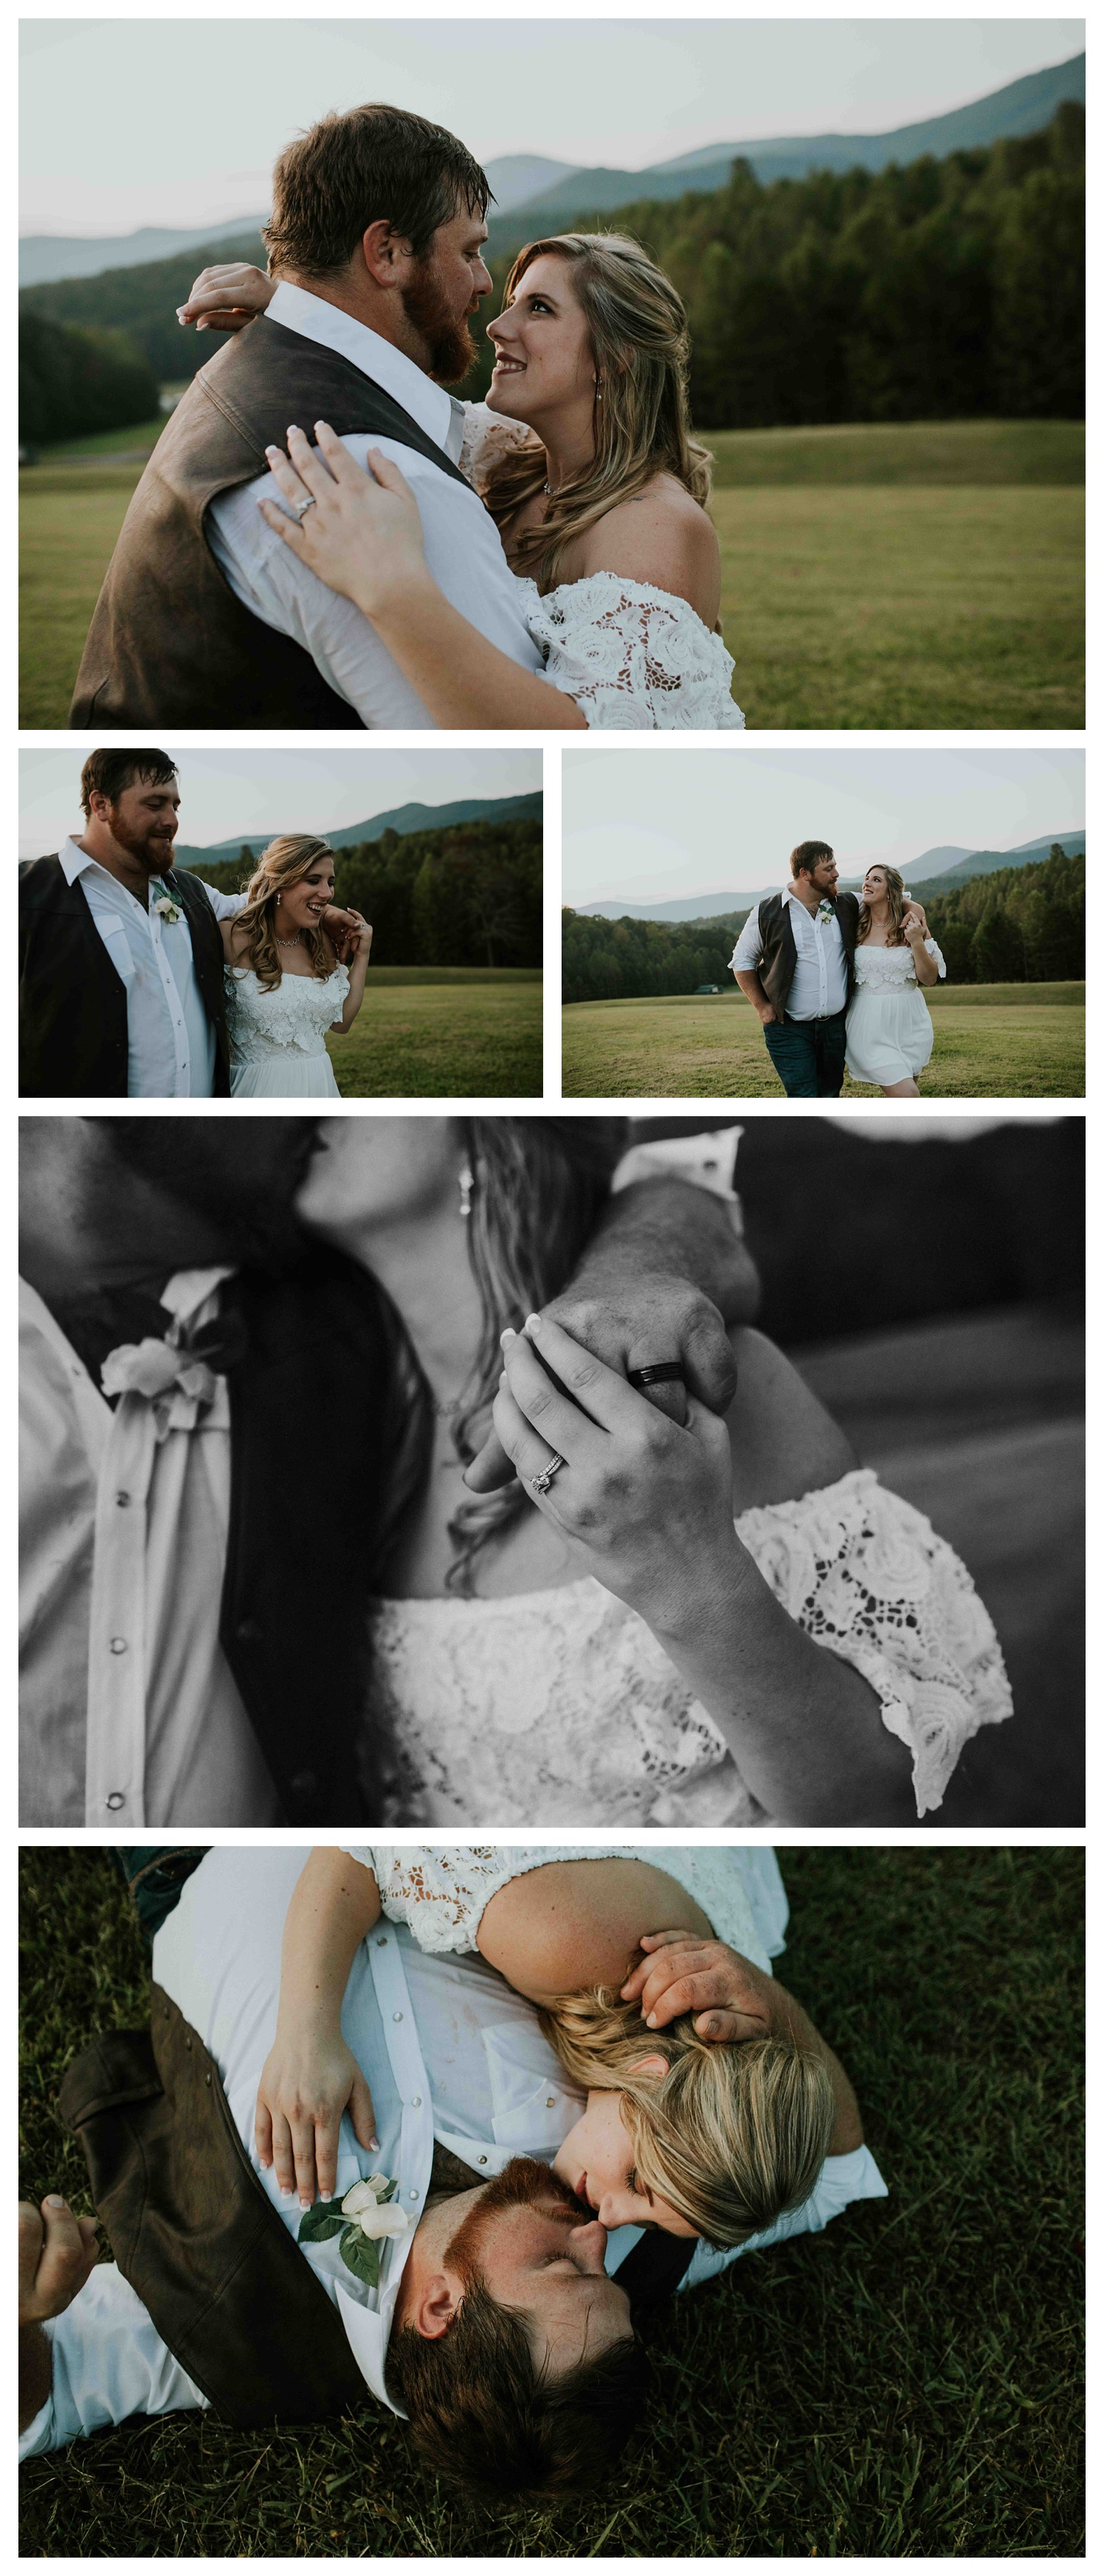 Destination Wedding Photographer R-Ranch in the Mountains Georgia Chloe Ann Photography_0015.jpg